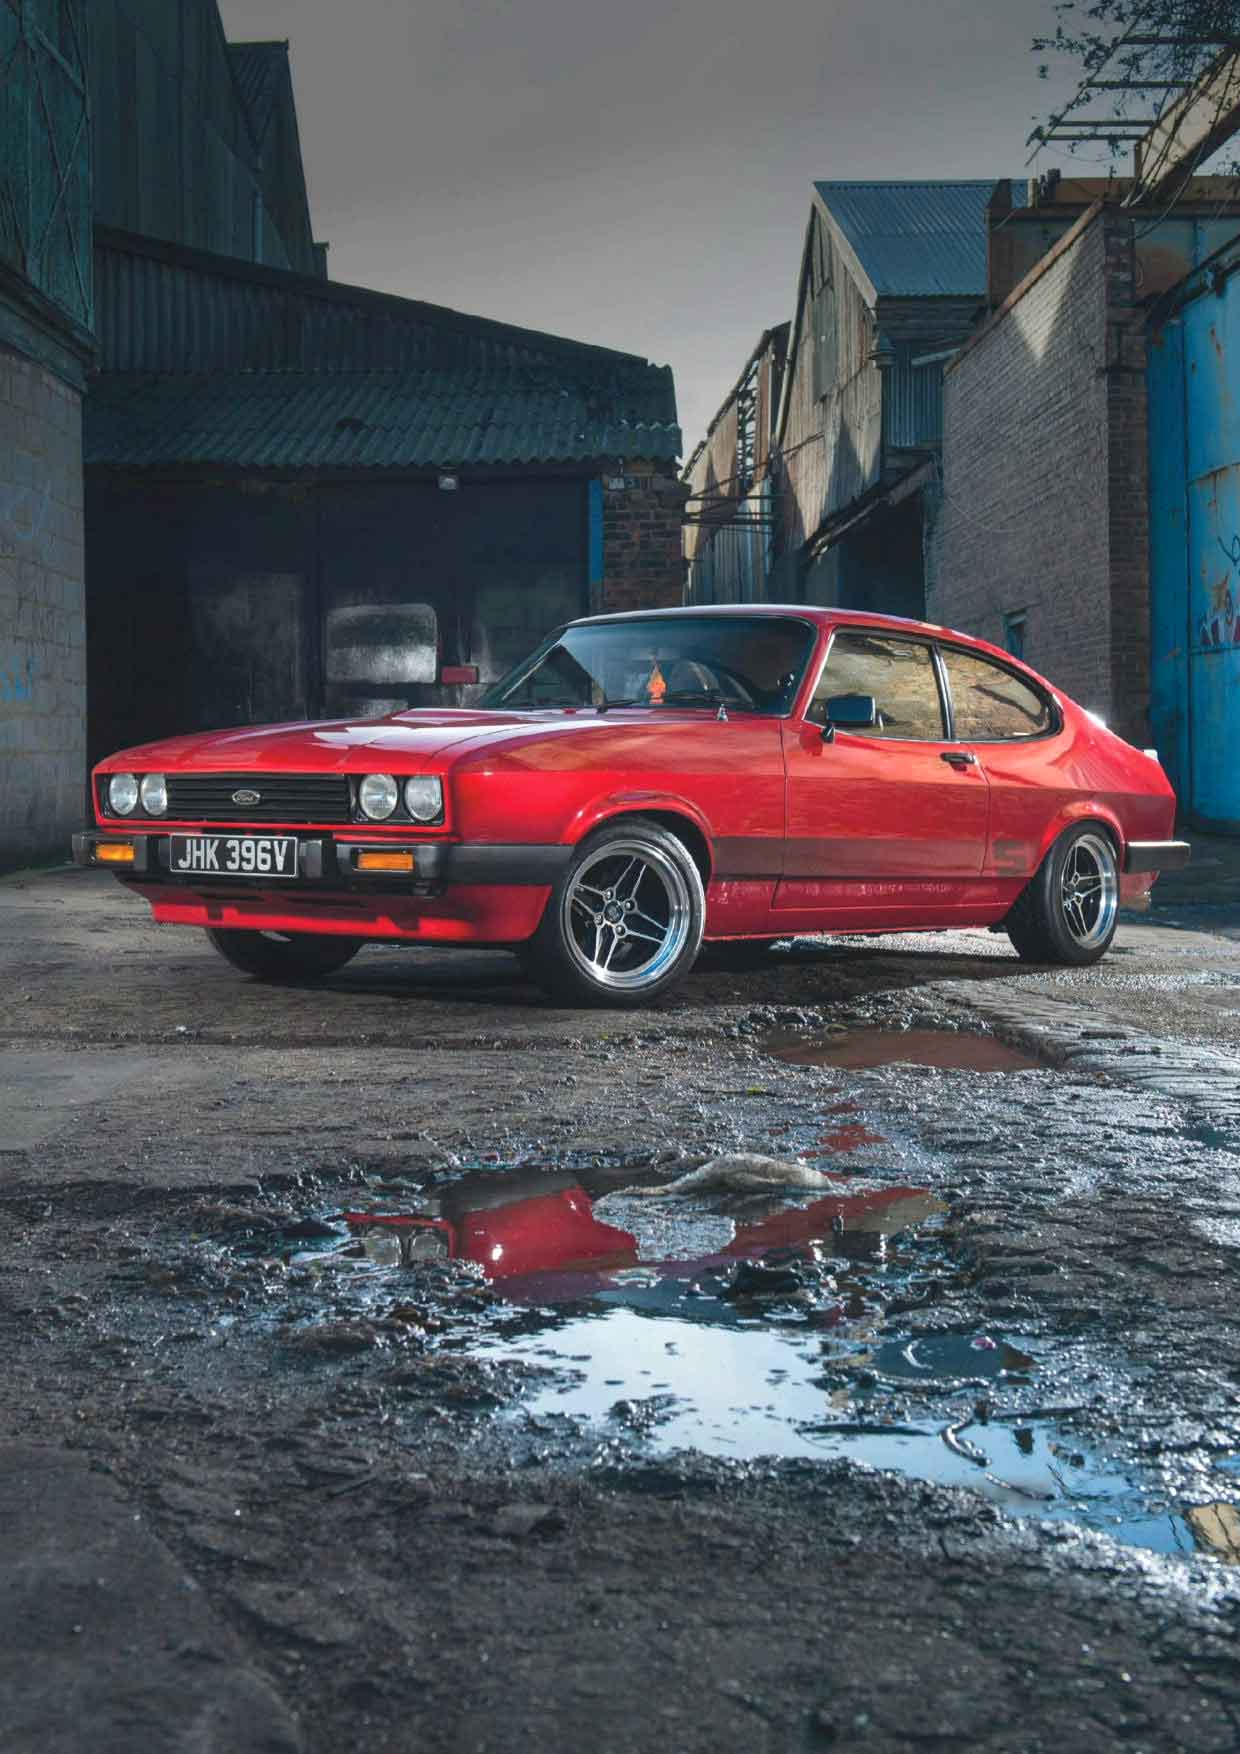 Homebuilt Hero 1979 Ford Capri 2 0s Early Mk3 That S Now A Sorted Screen Star Drive My Blogs Drive